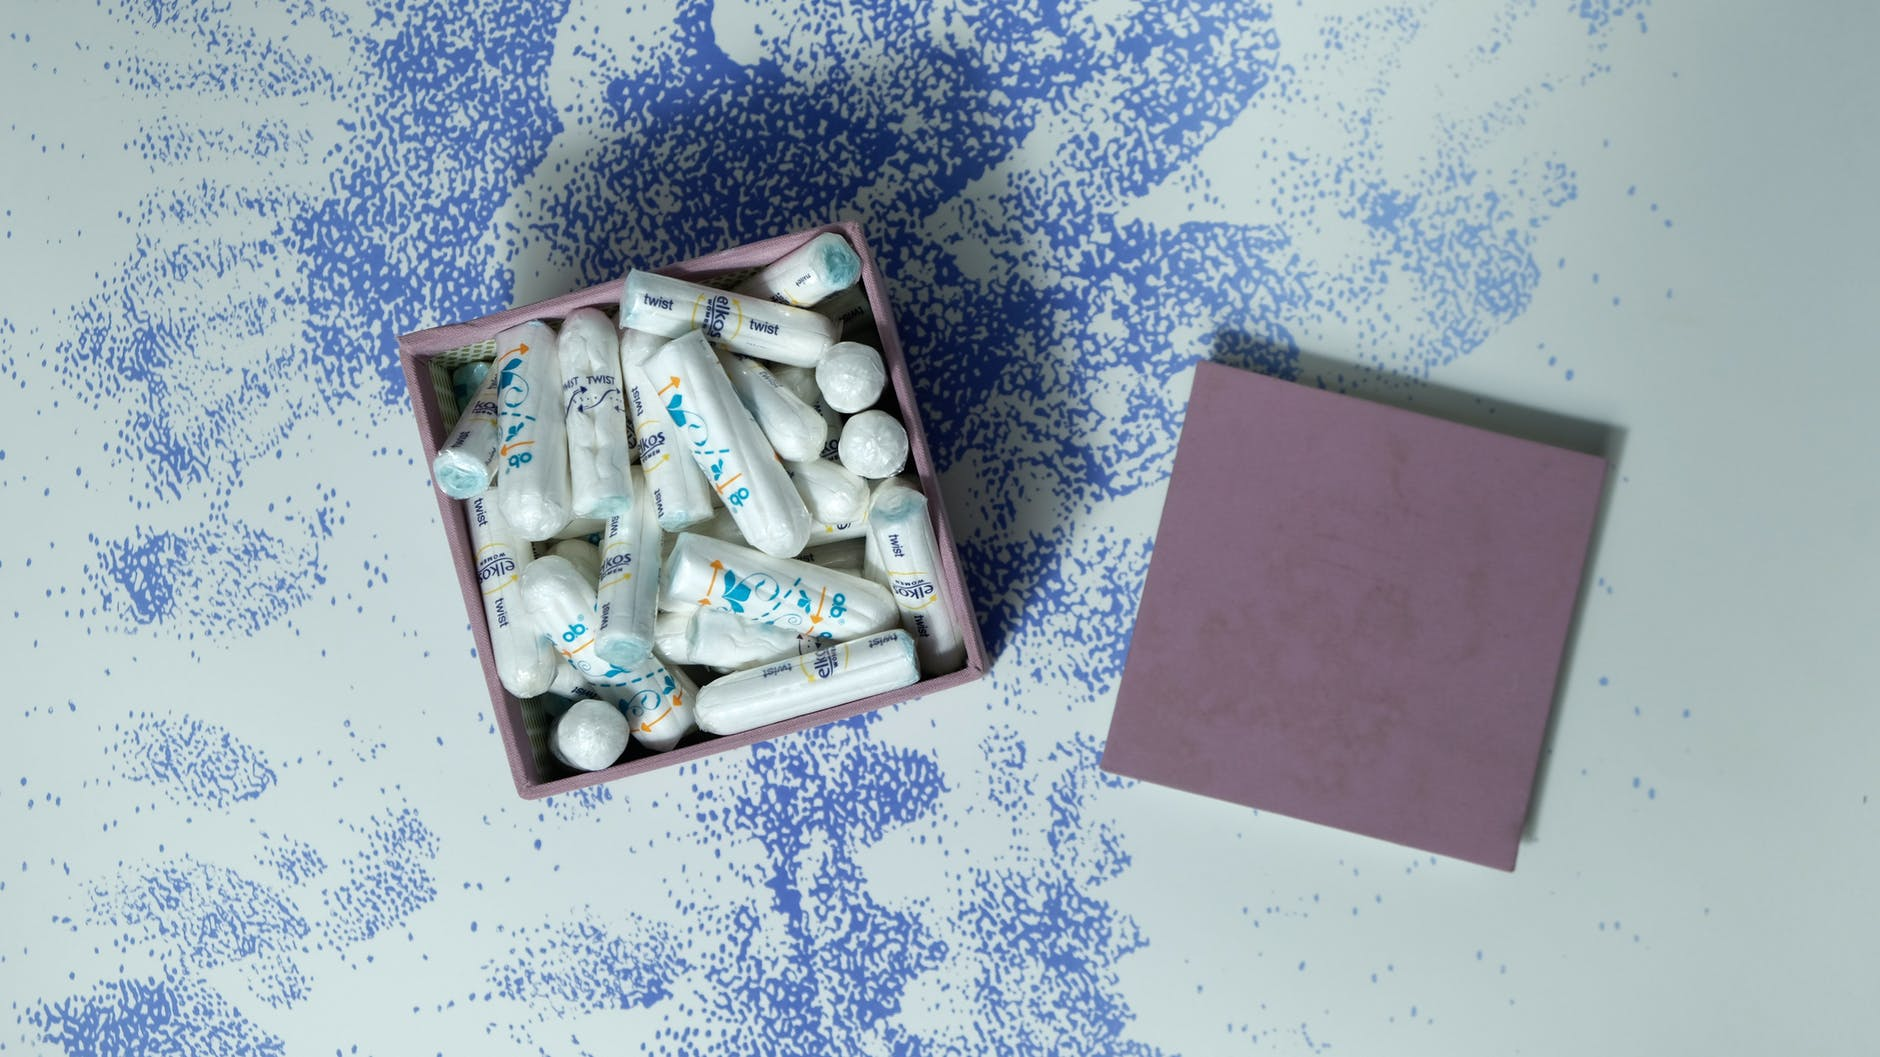 box with heap of tampons